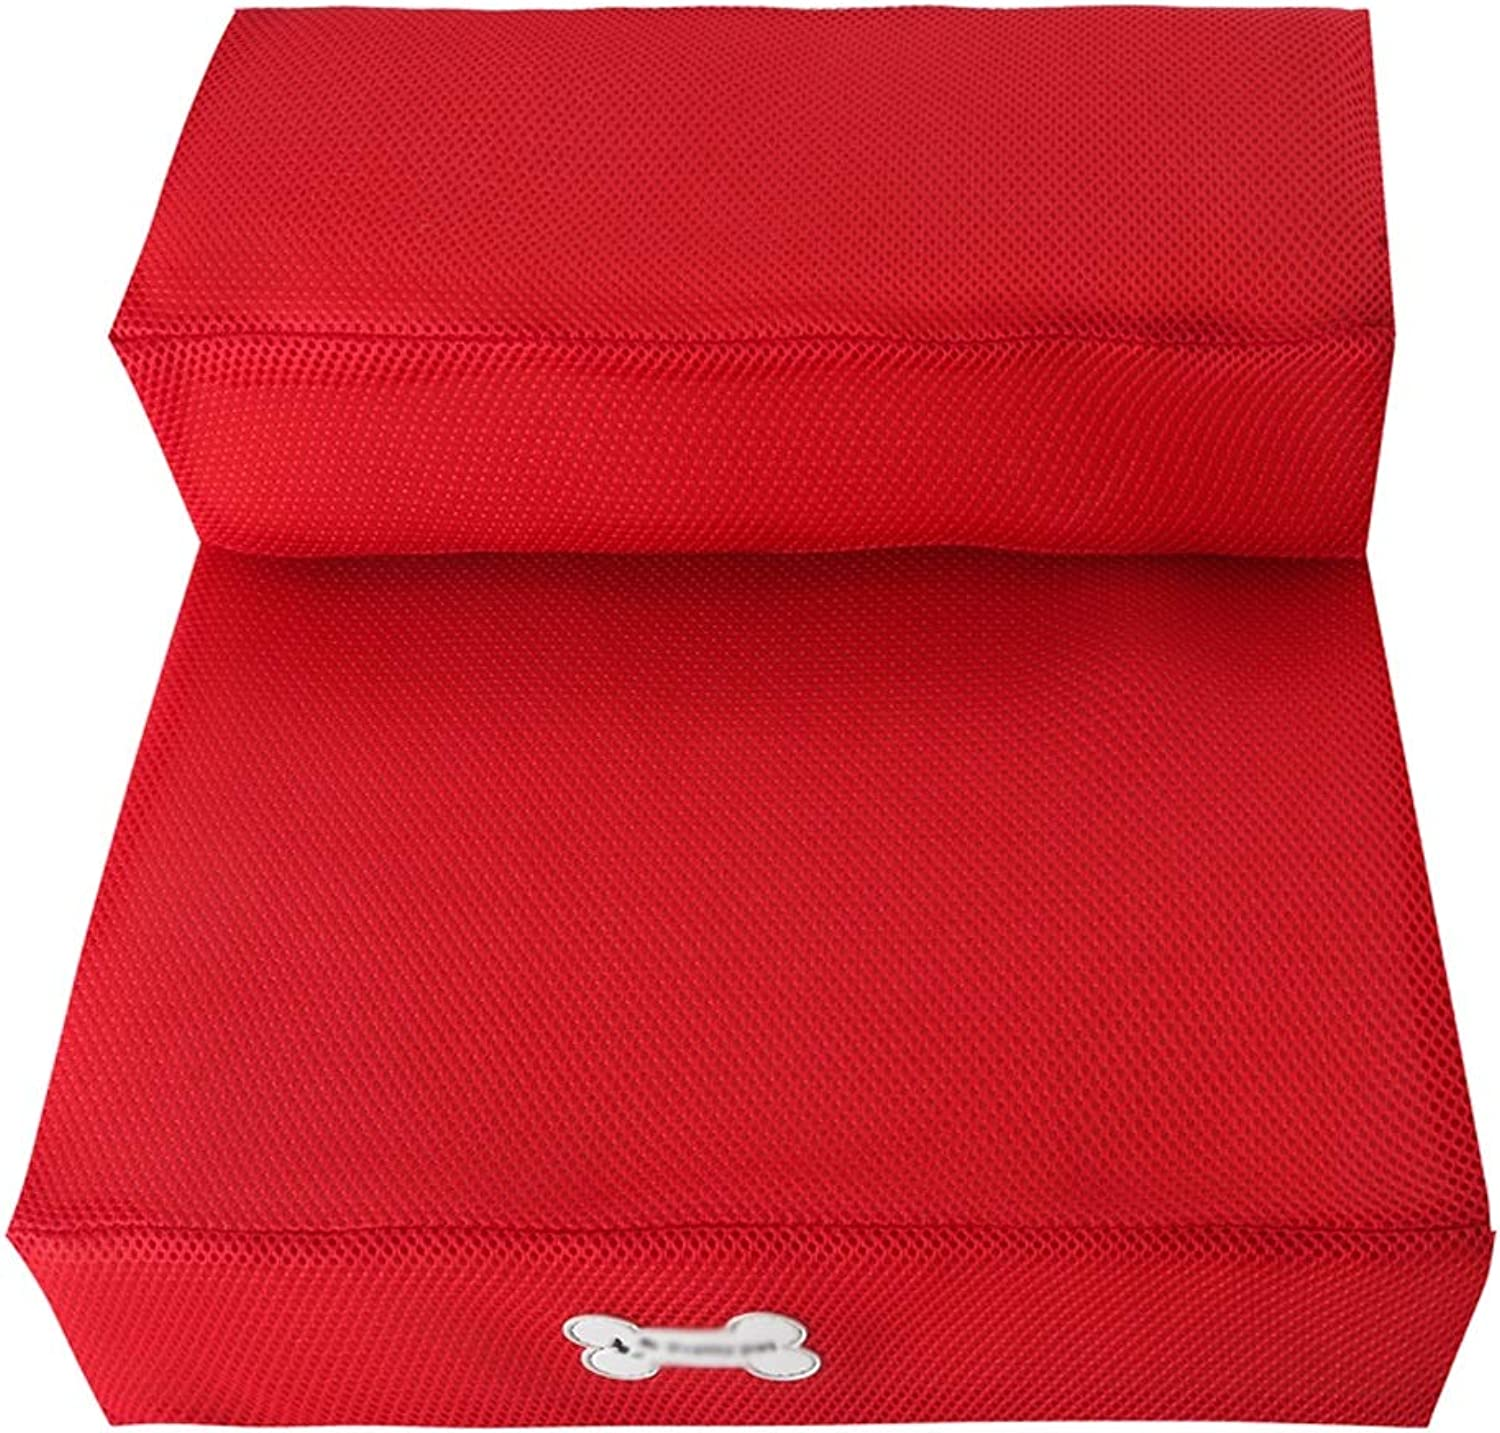 DS Pet toys Dog Stairs Breathable Mesh Foldable Outer Layer Detachable Cleaning Pet Stairs Training Table Sponge Mat Climb 6 colors Optional && (color   Red)